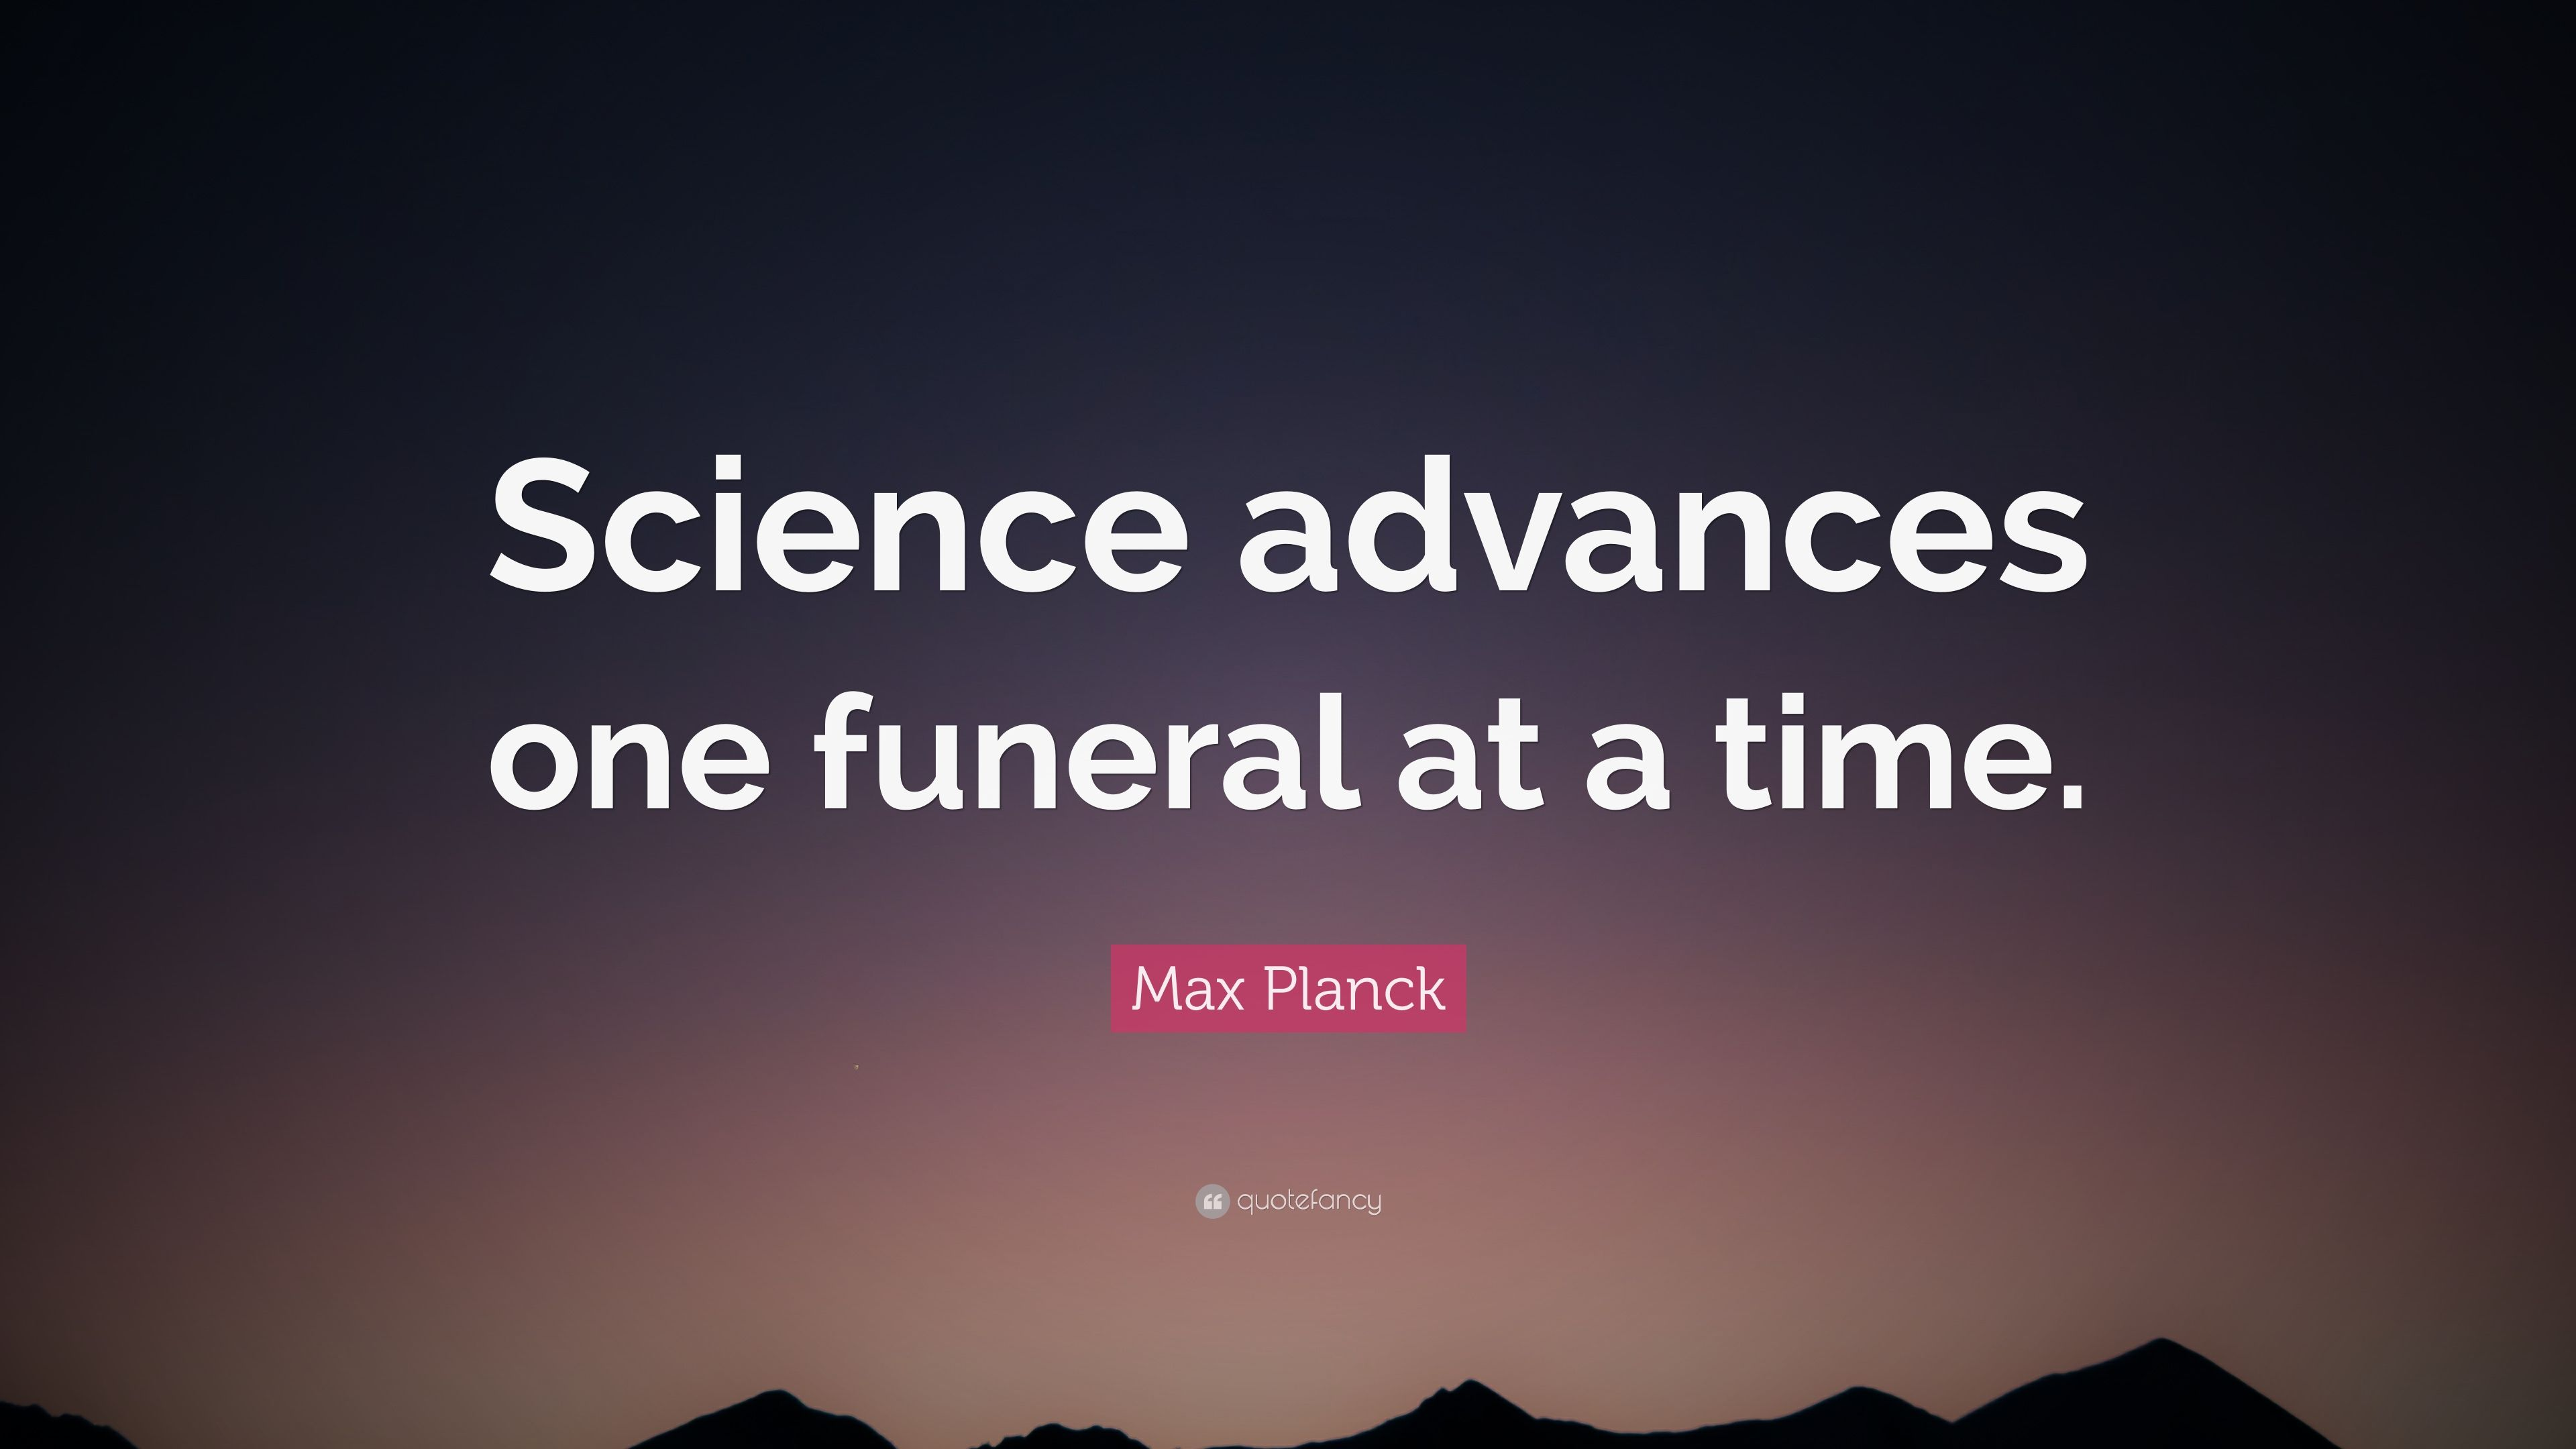 emptiness science max planck advances form quote buddha funeral quotes wallpapers quotefancy